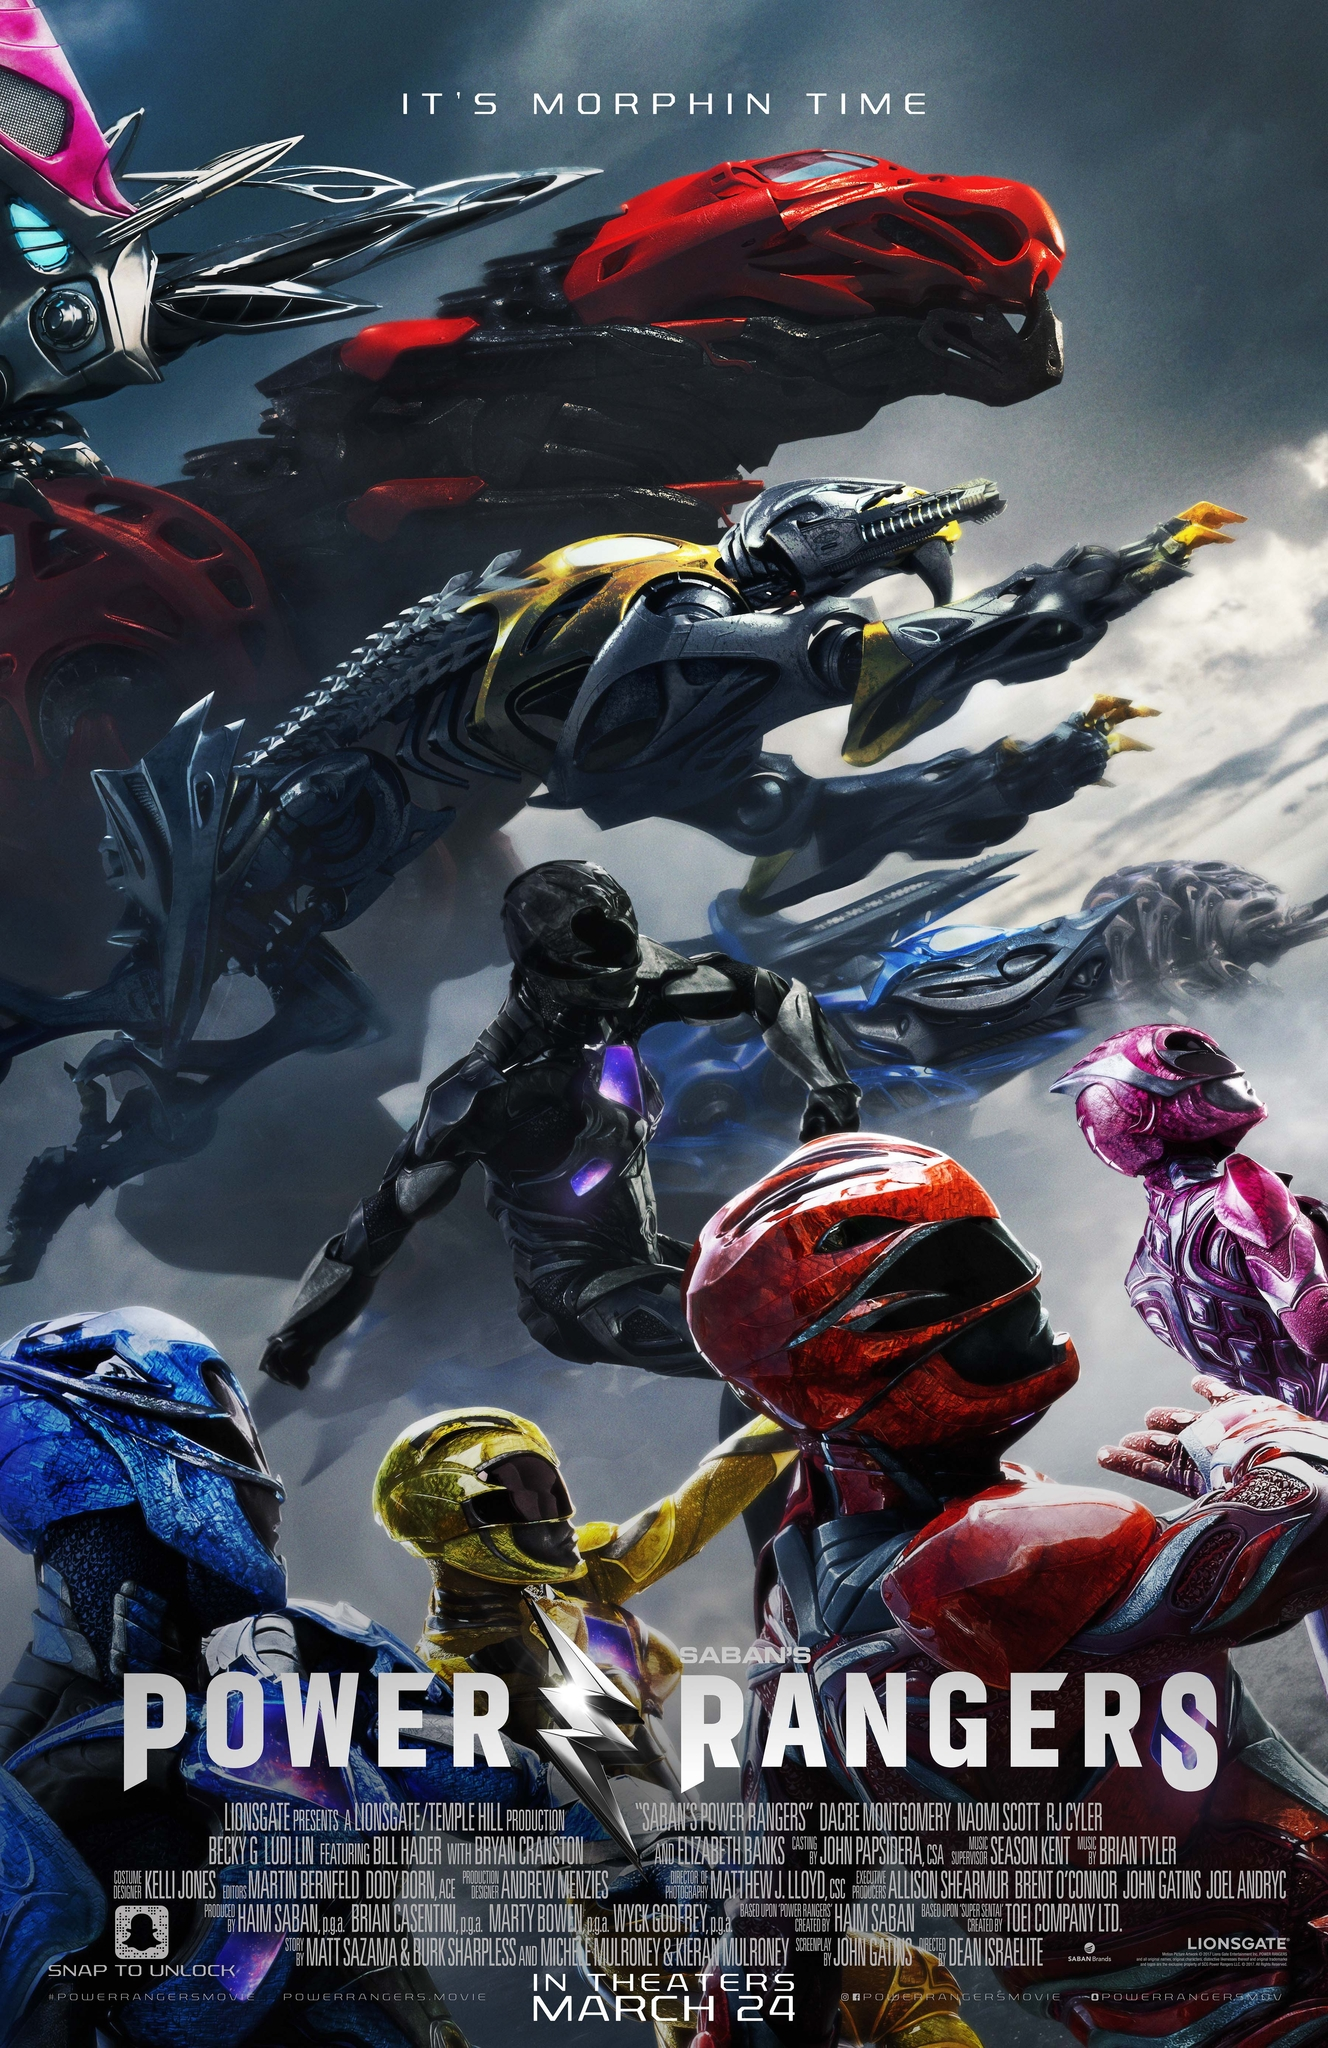 Power Rangers (2017) Technical Specifications